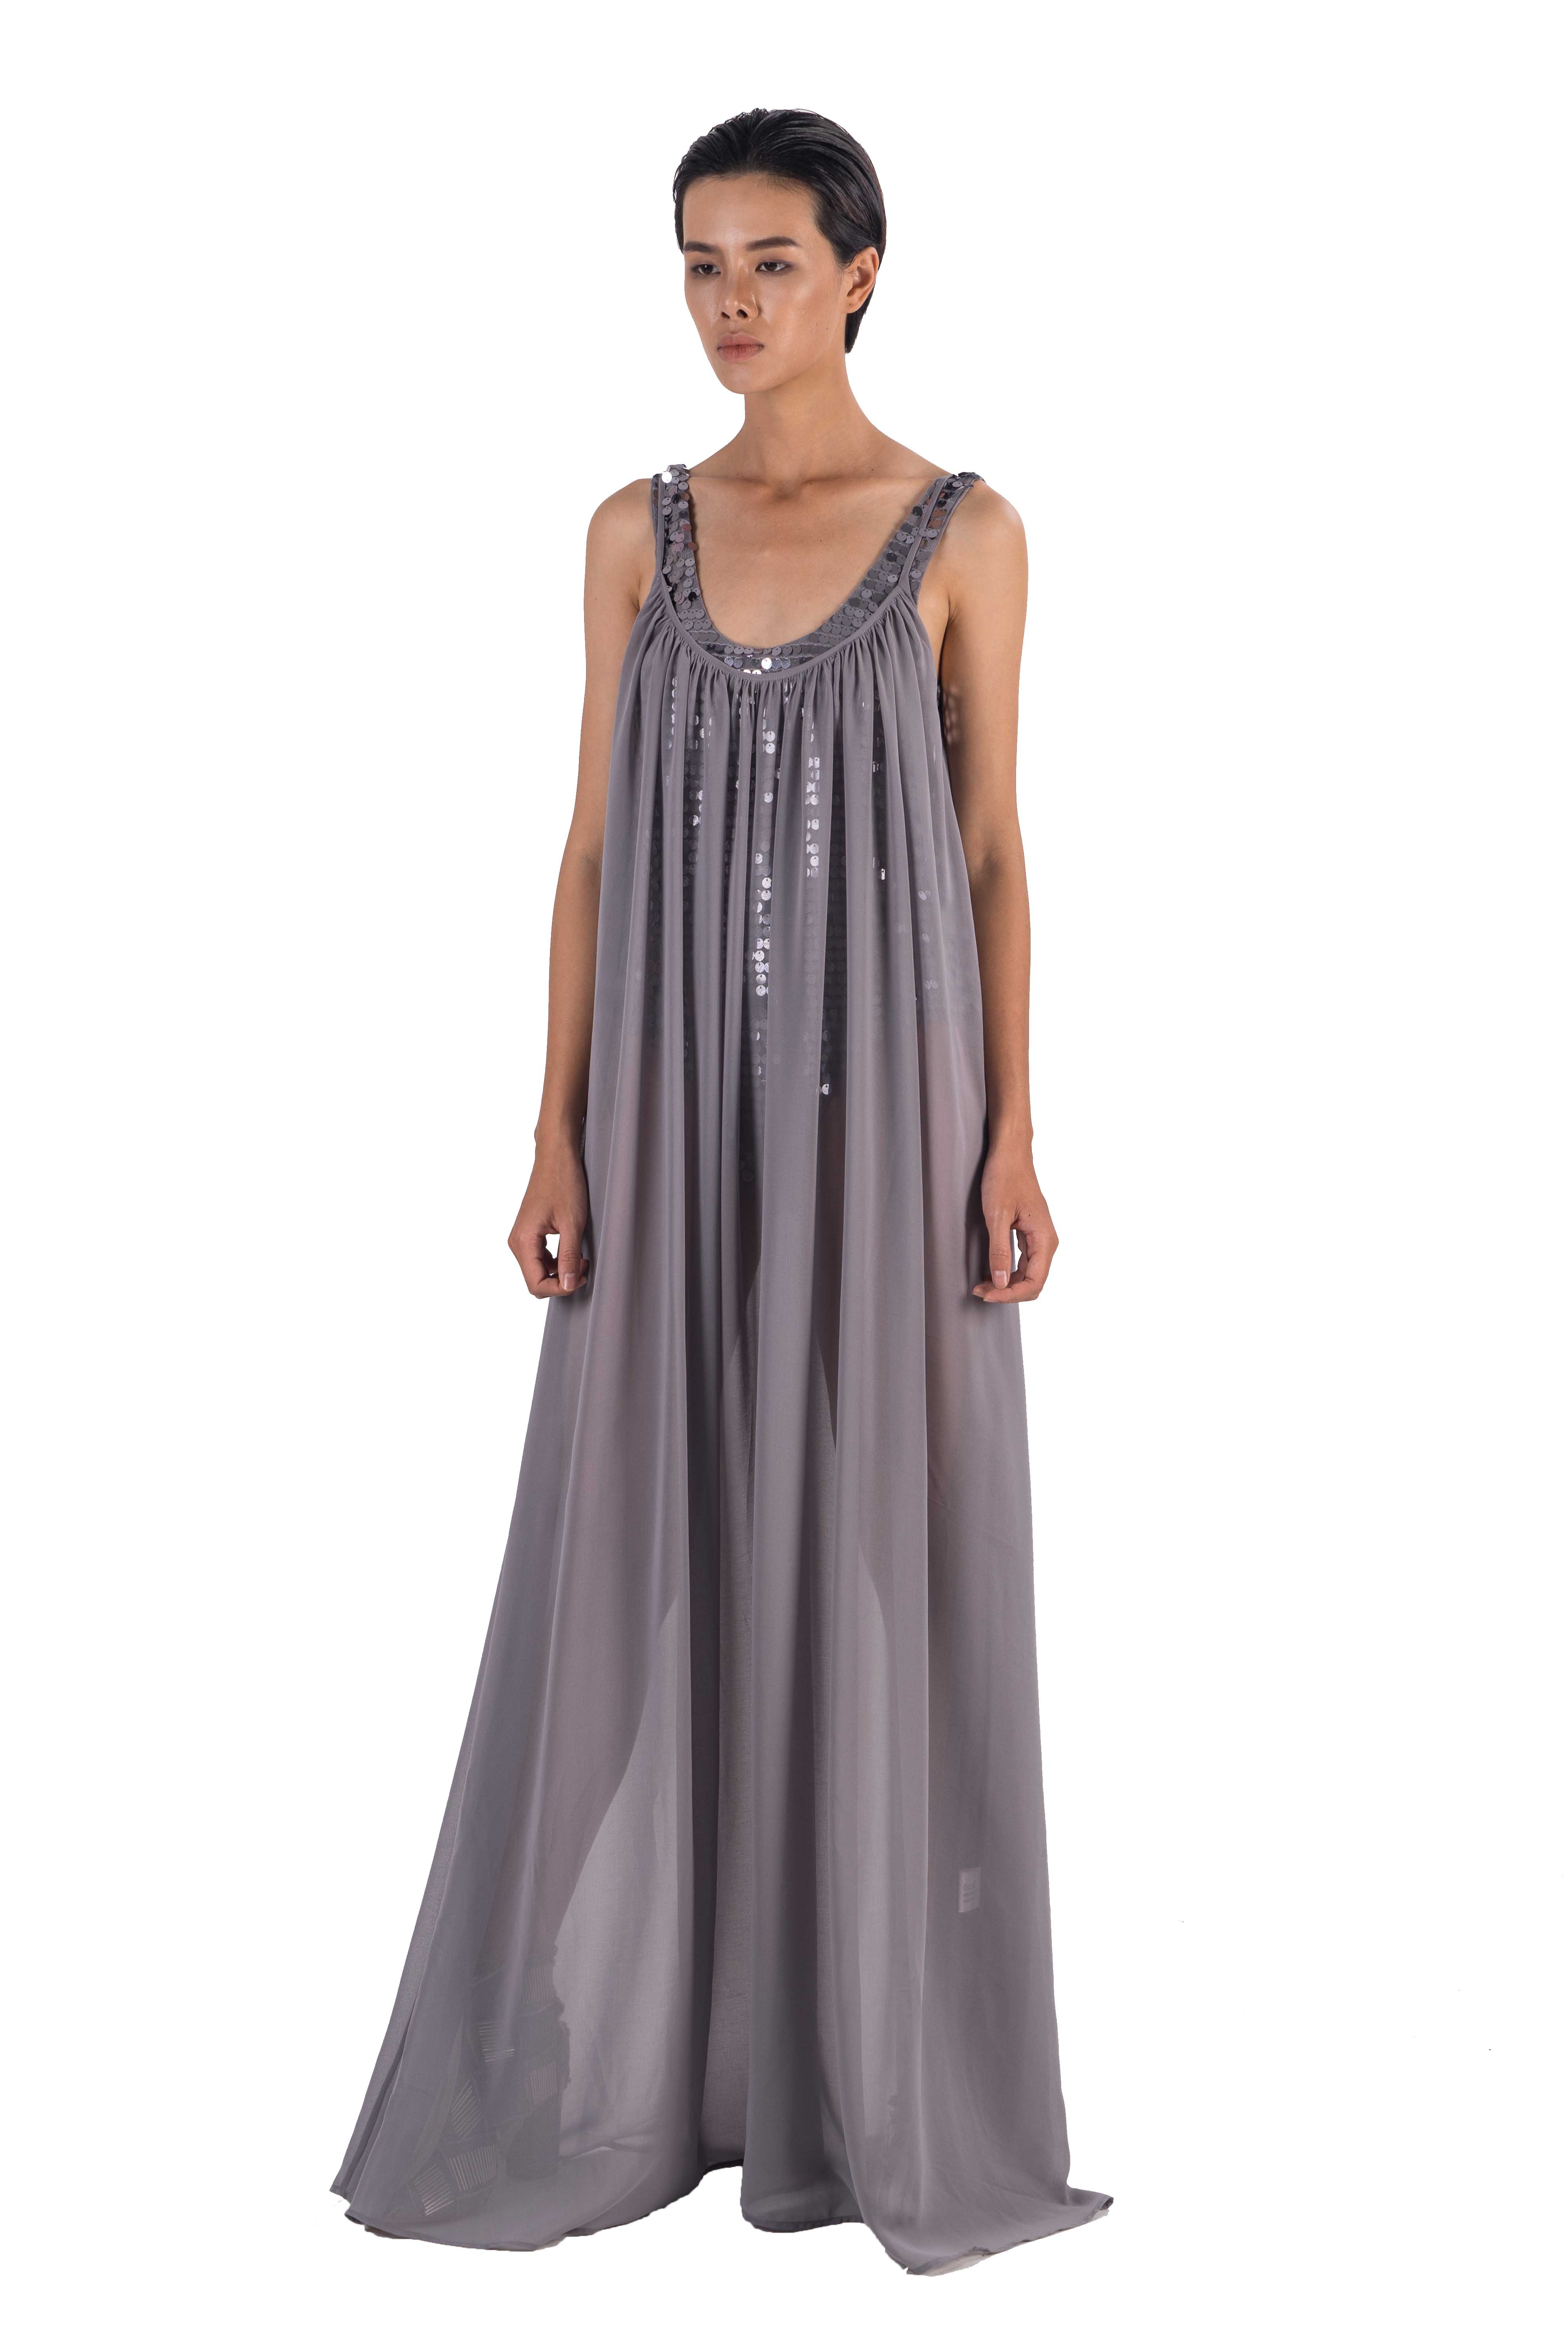 Grey chiffon maxi slip dress